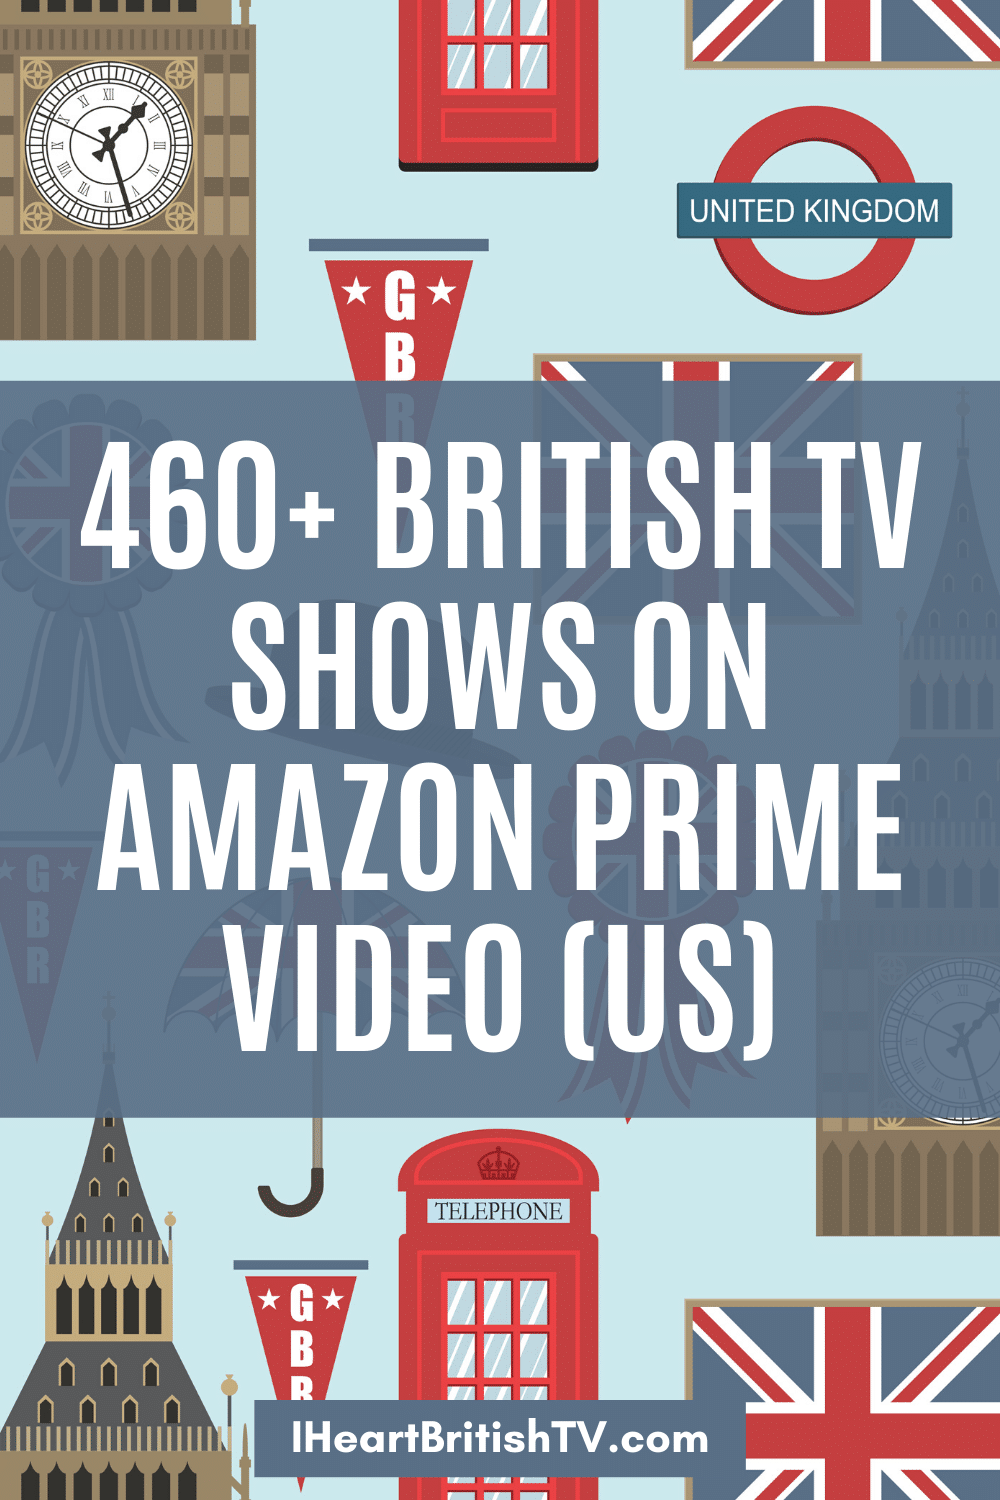 2020 Update: 460+ British TV Shows You Can Watch with Amazon Prime Video 97